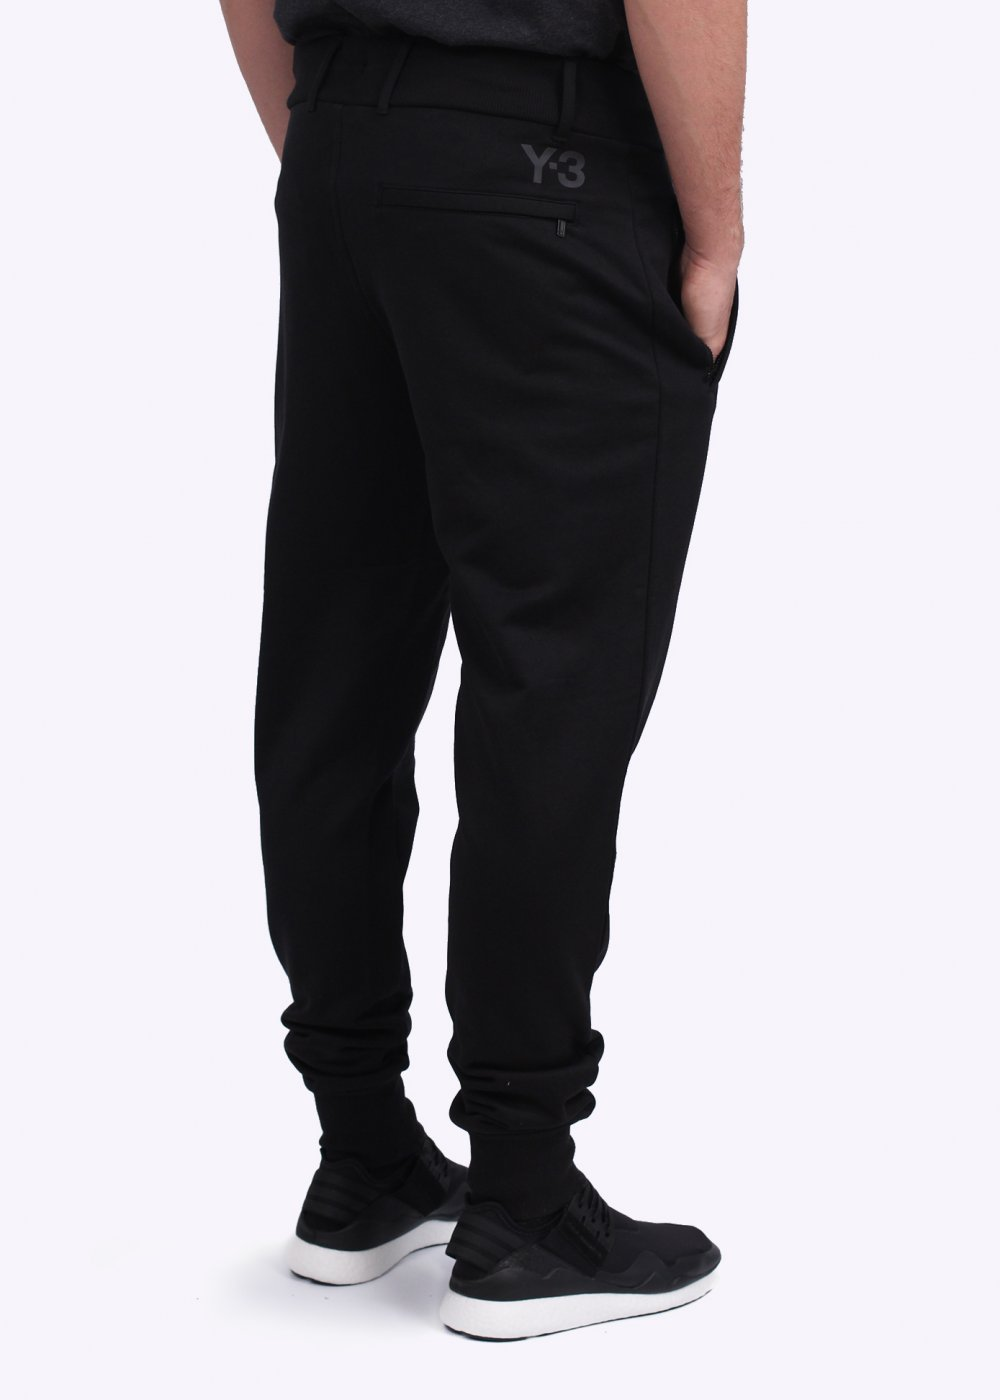 adidas Y-3 CL FT Cuff Pants - Black ad51714e8191